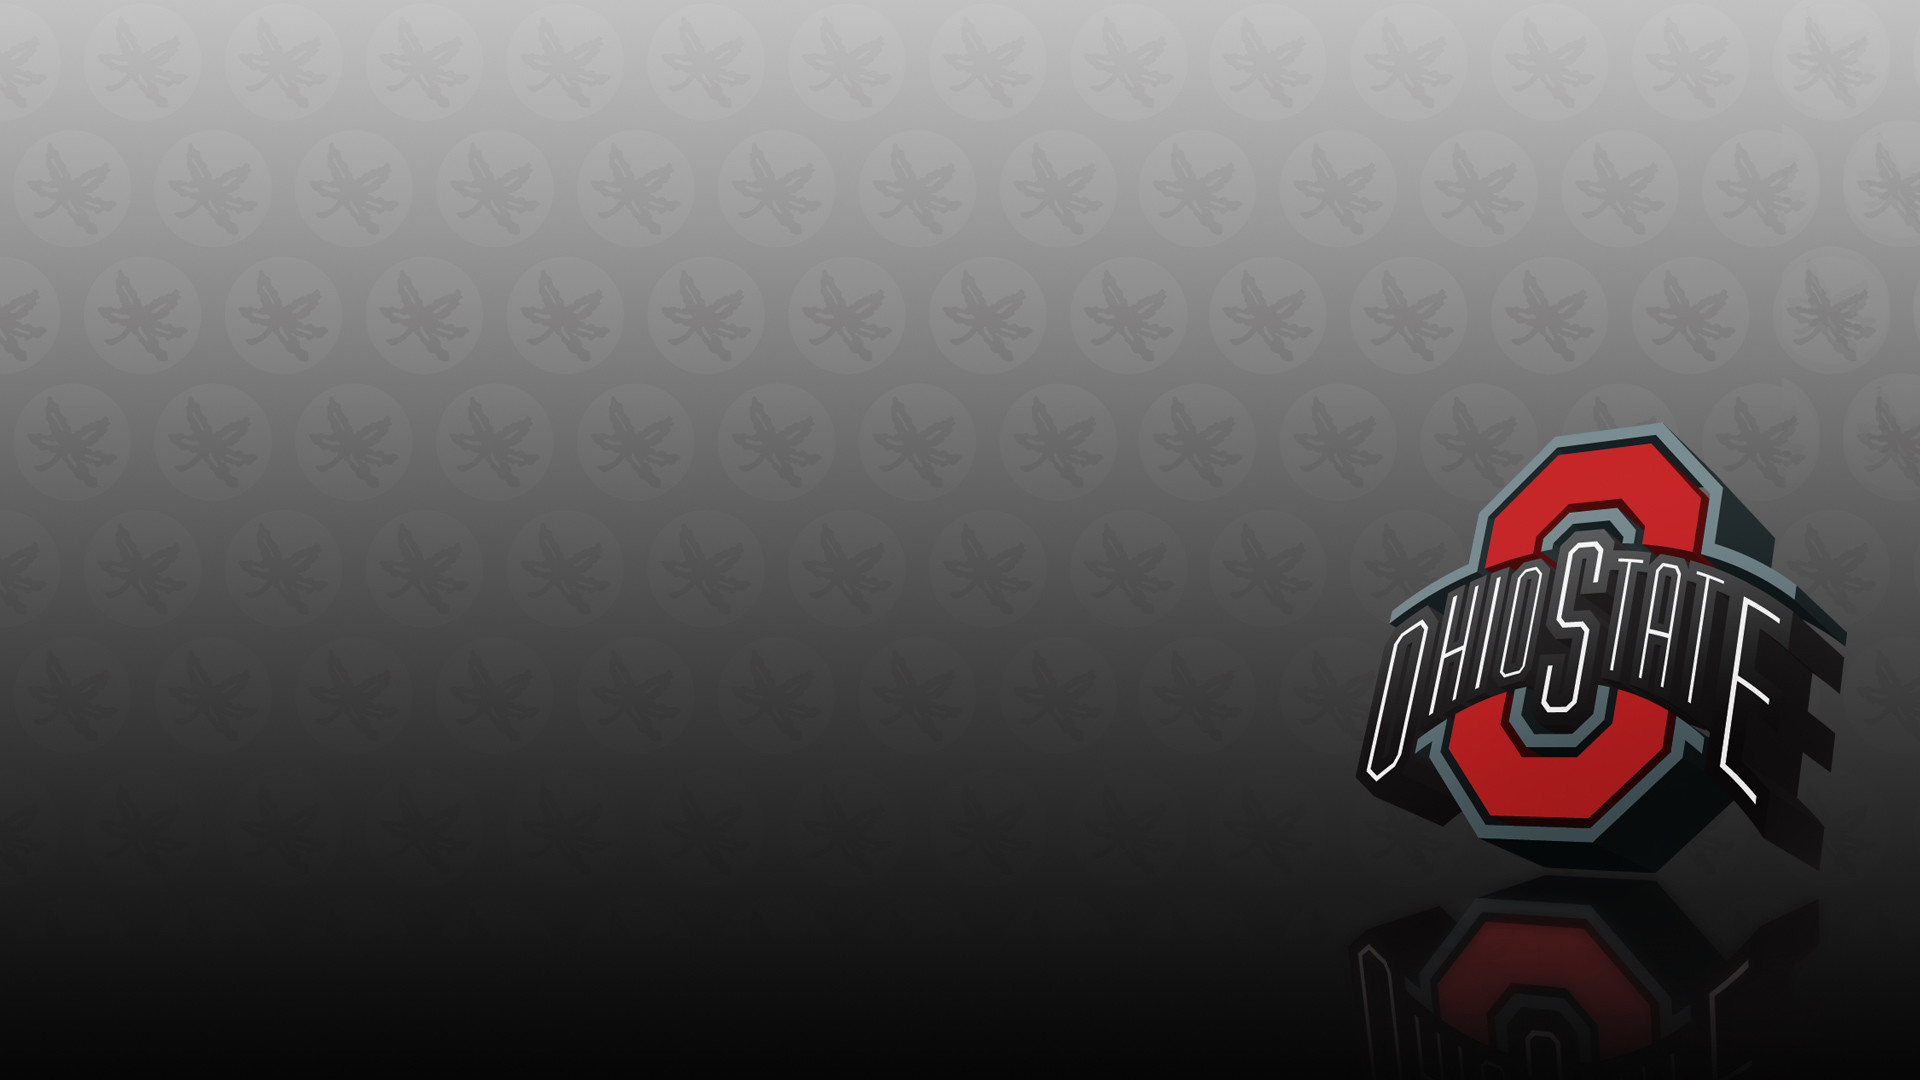 Ohio State Wallpaper (78+ images)